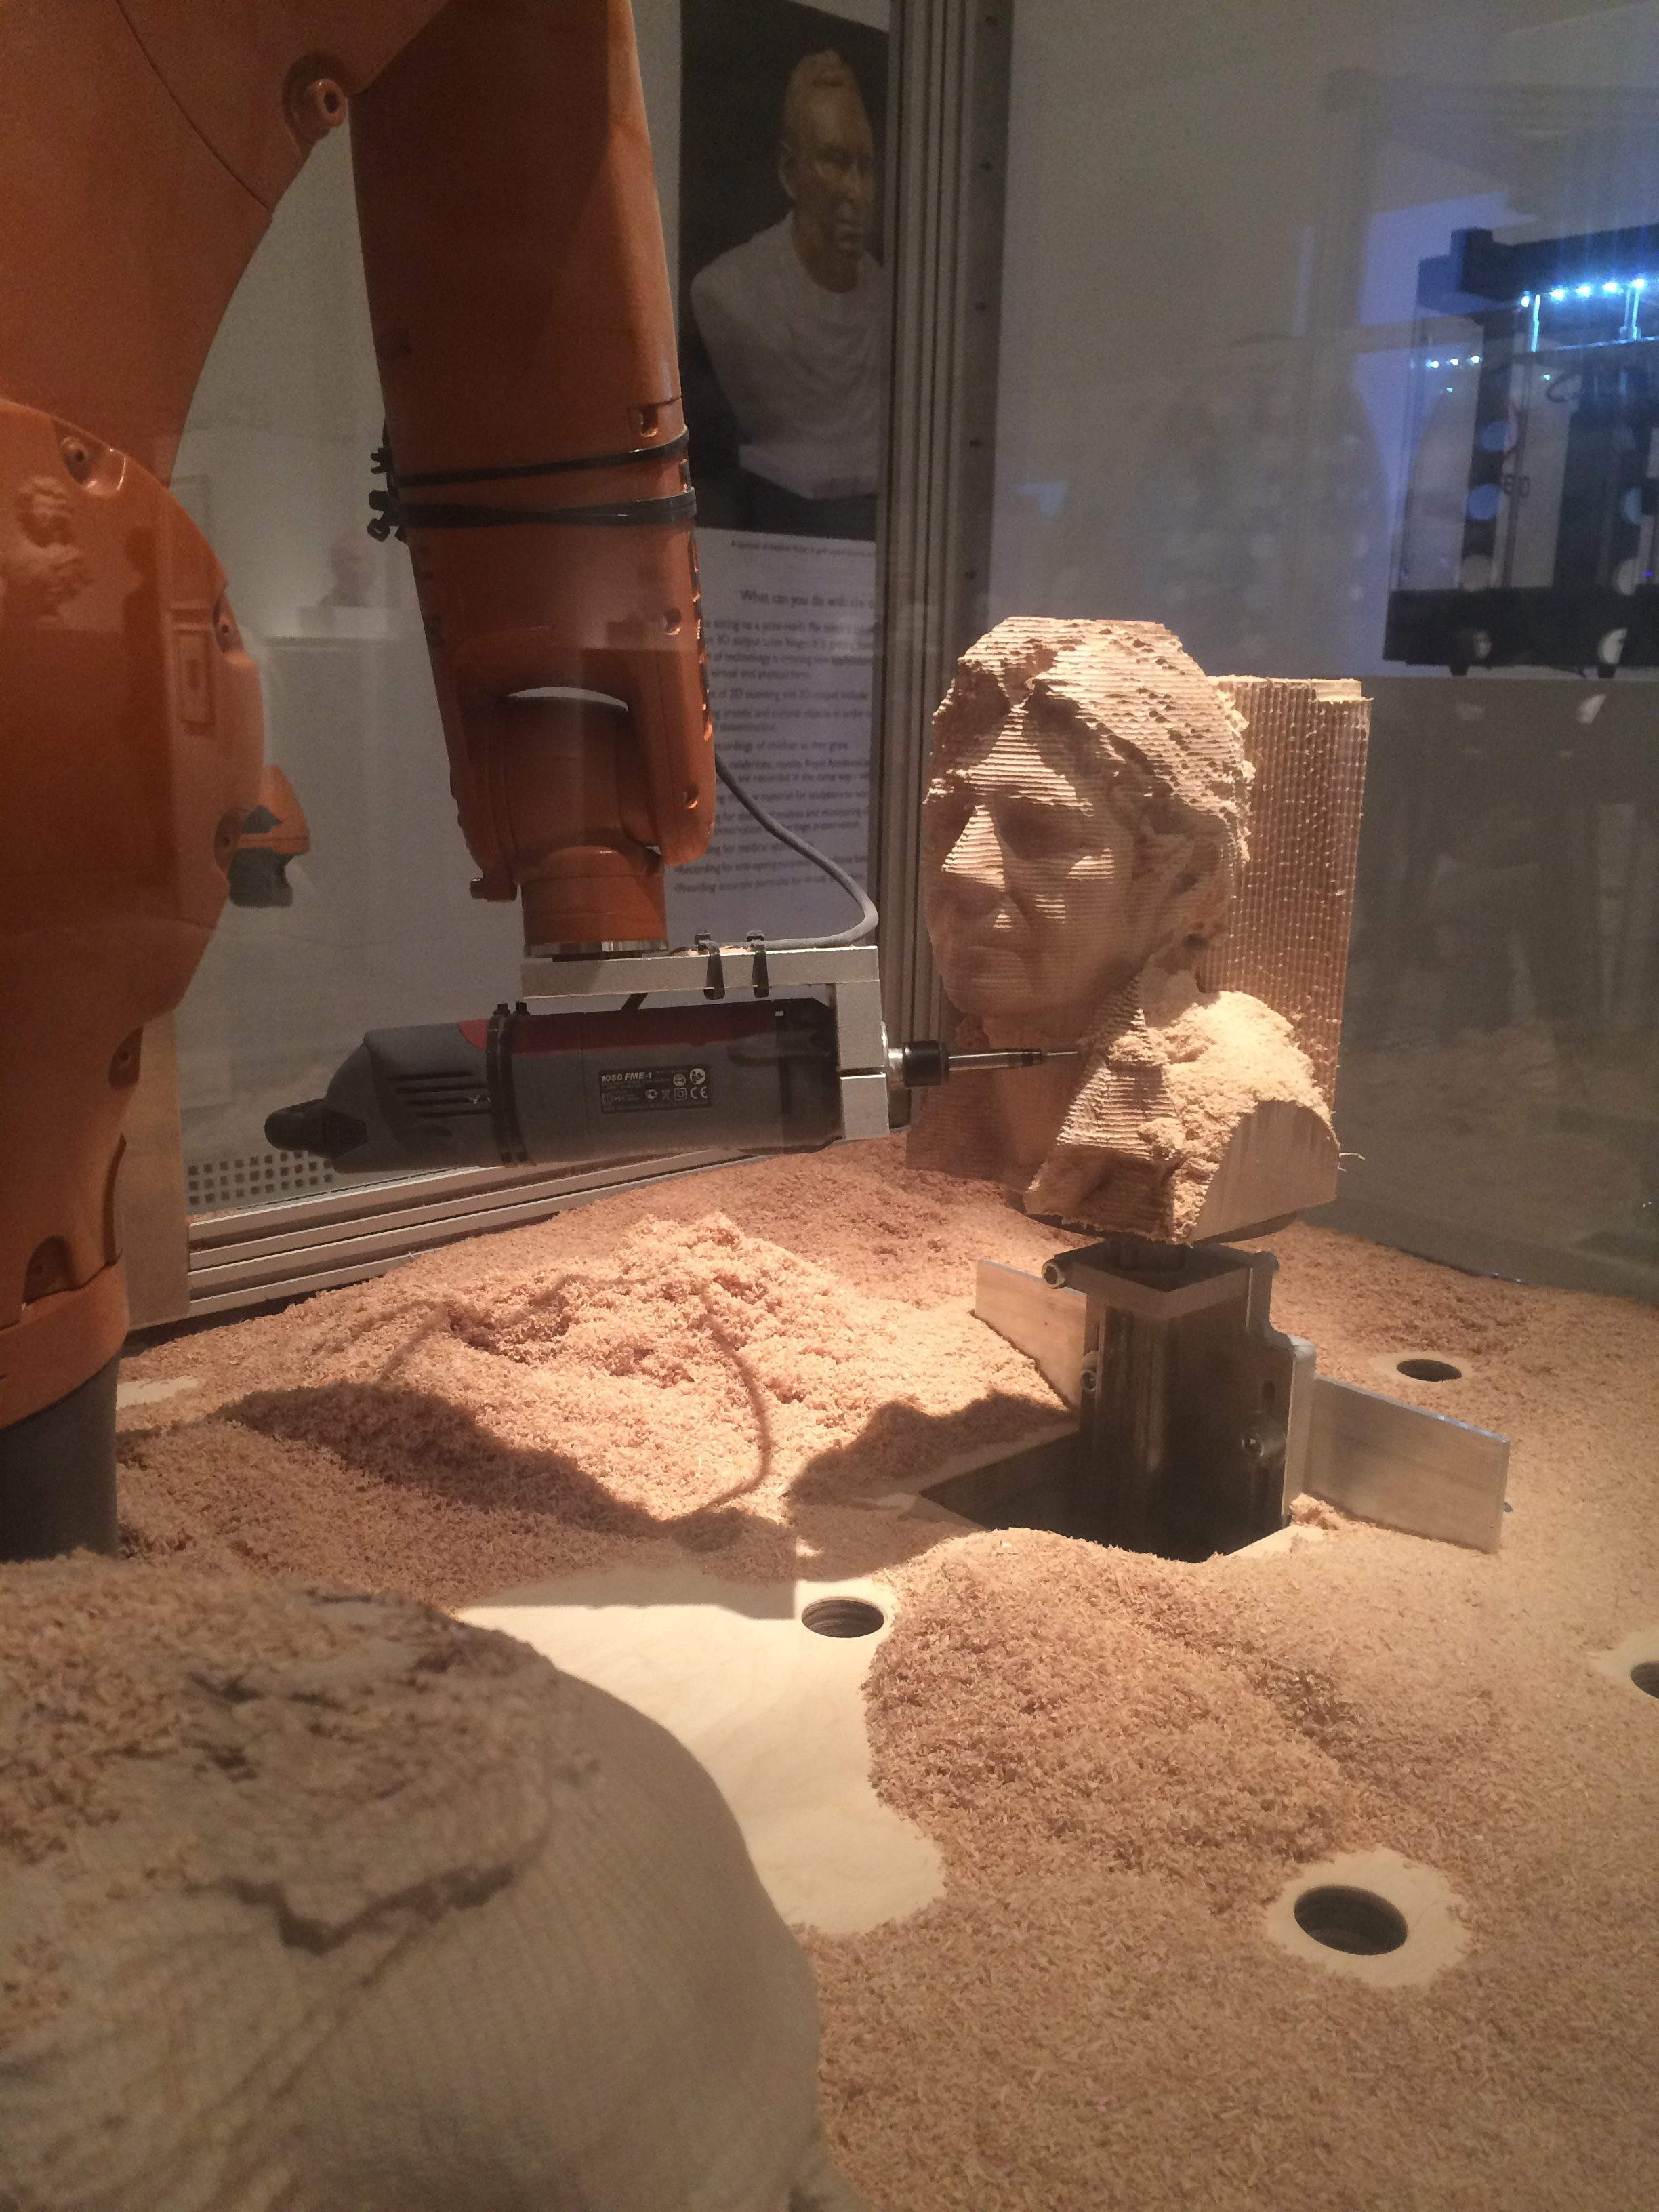 this is a robot that made sculptures it is awesome. the robot looks at your face and it copy's your face on to the wood. So it was really cool.